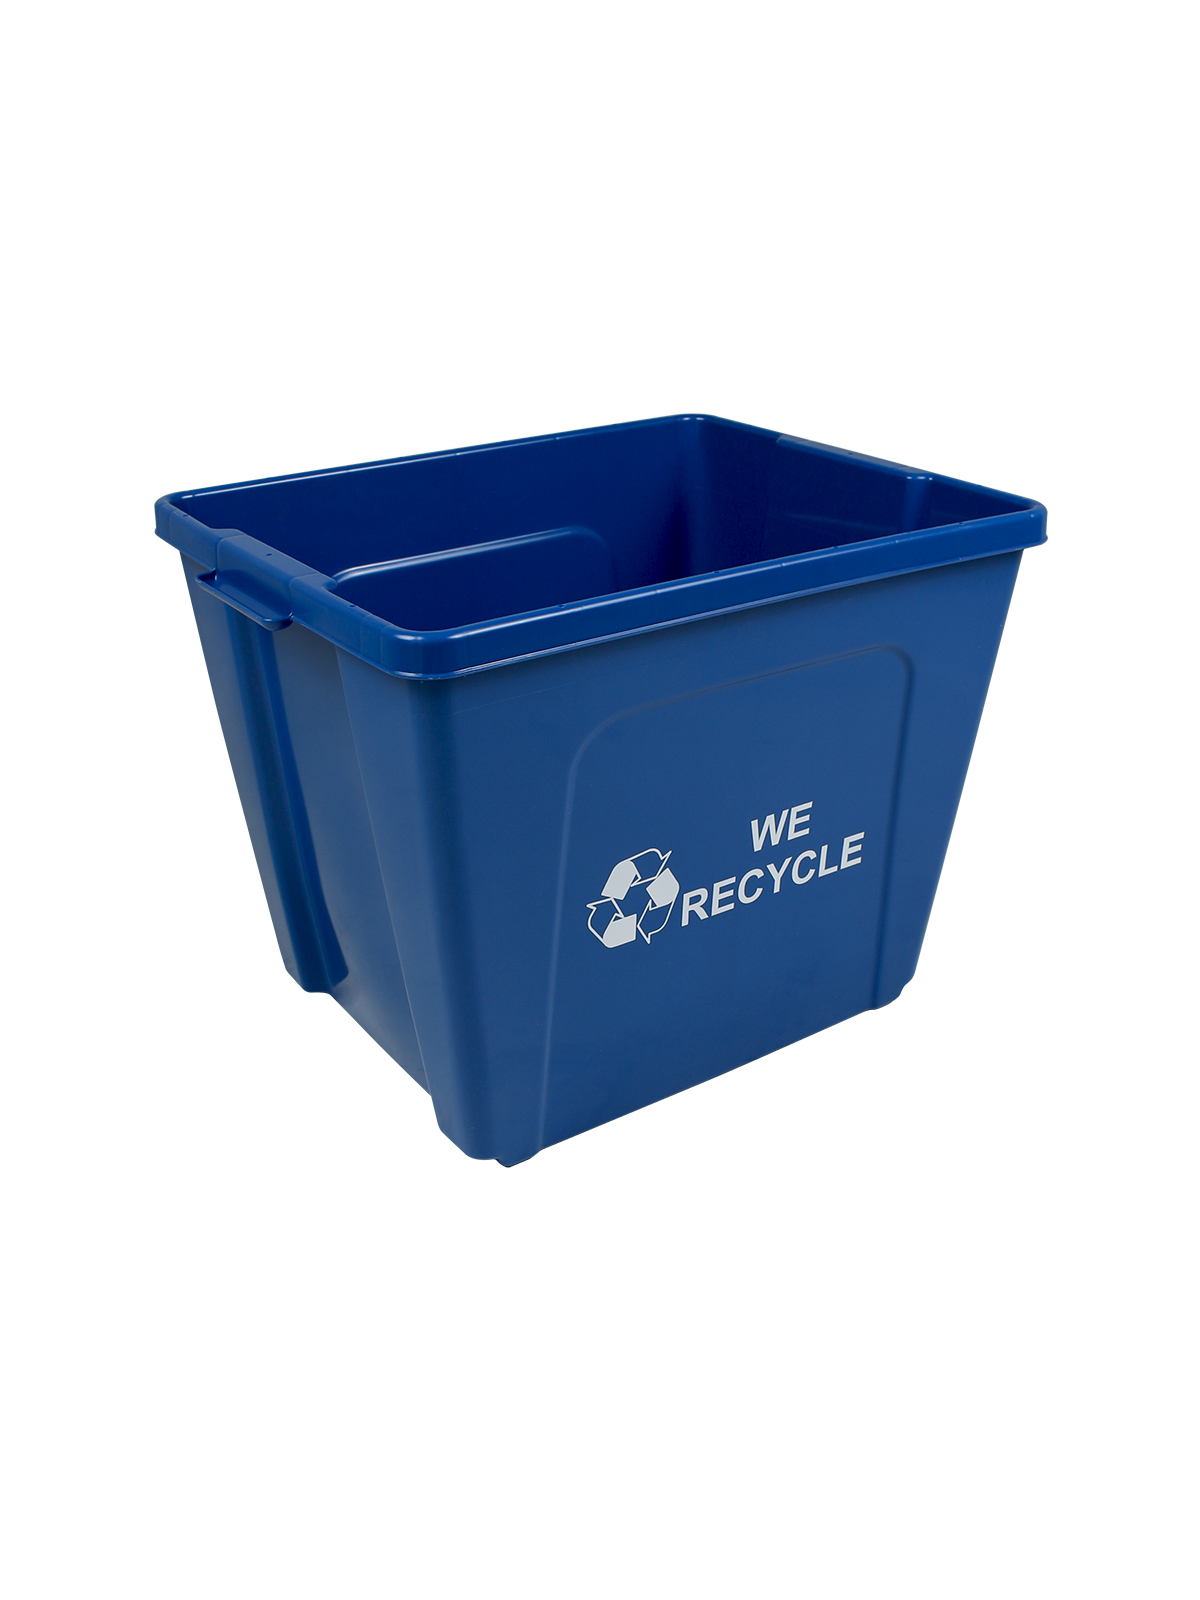 CURBSIDE - Body - 16 G - We Recycle - Busch Blue